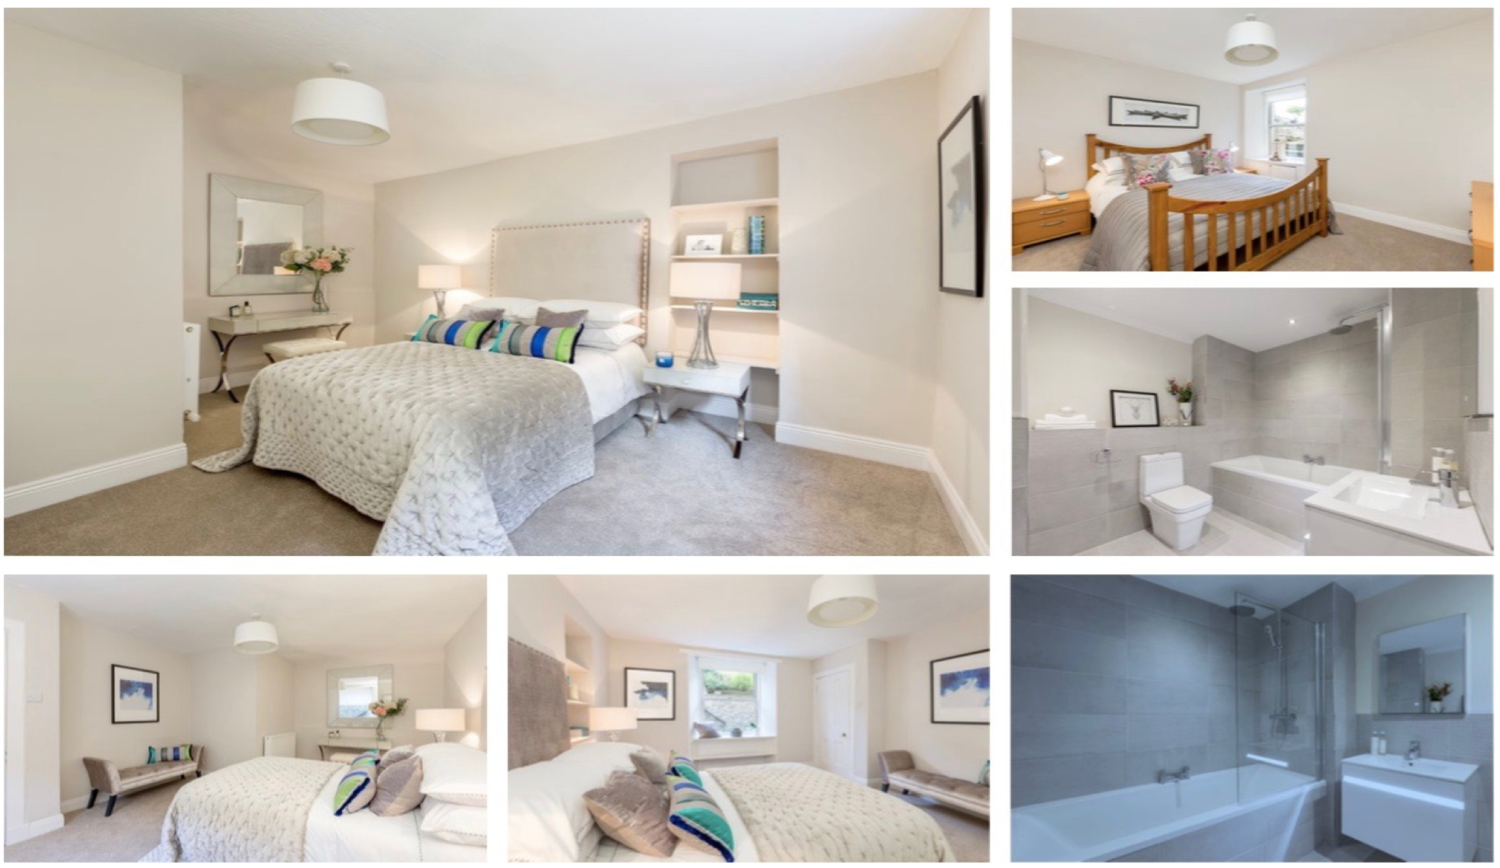 Master bedroom transformation home decor before and after